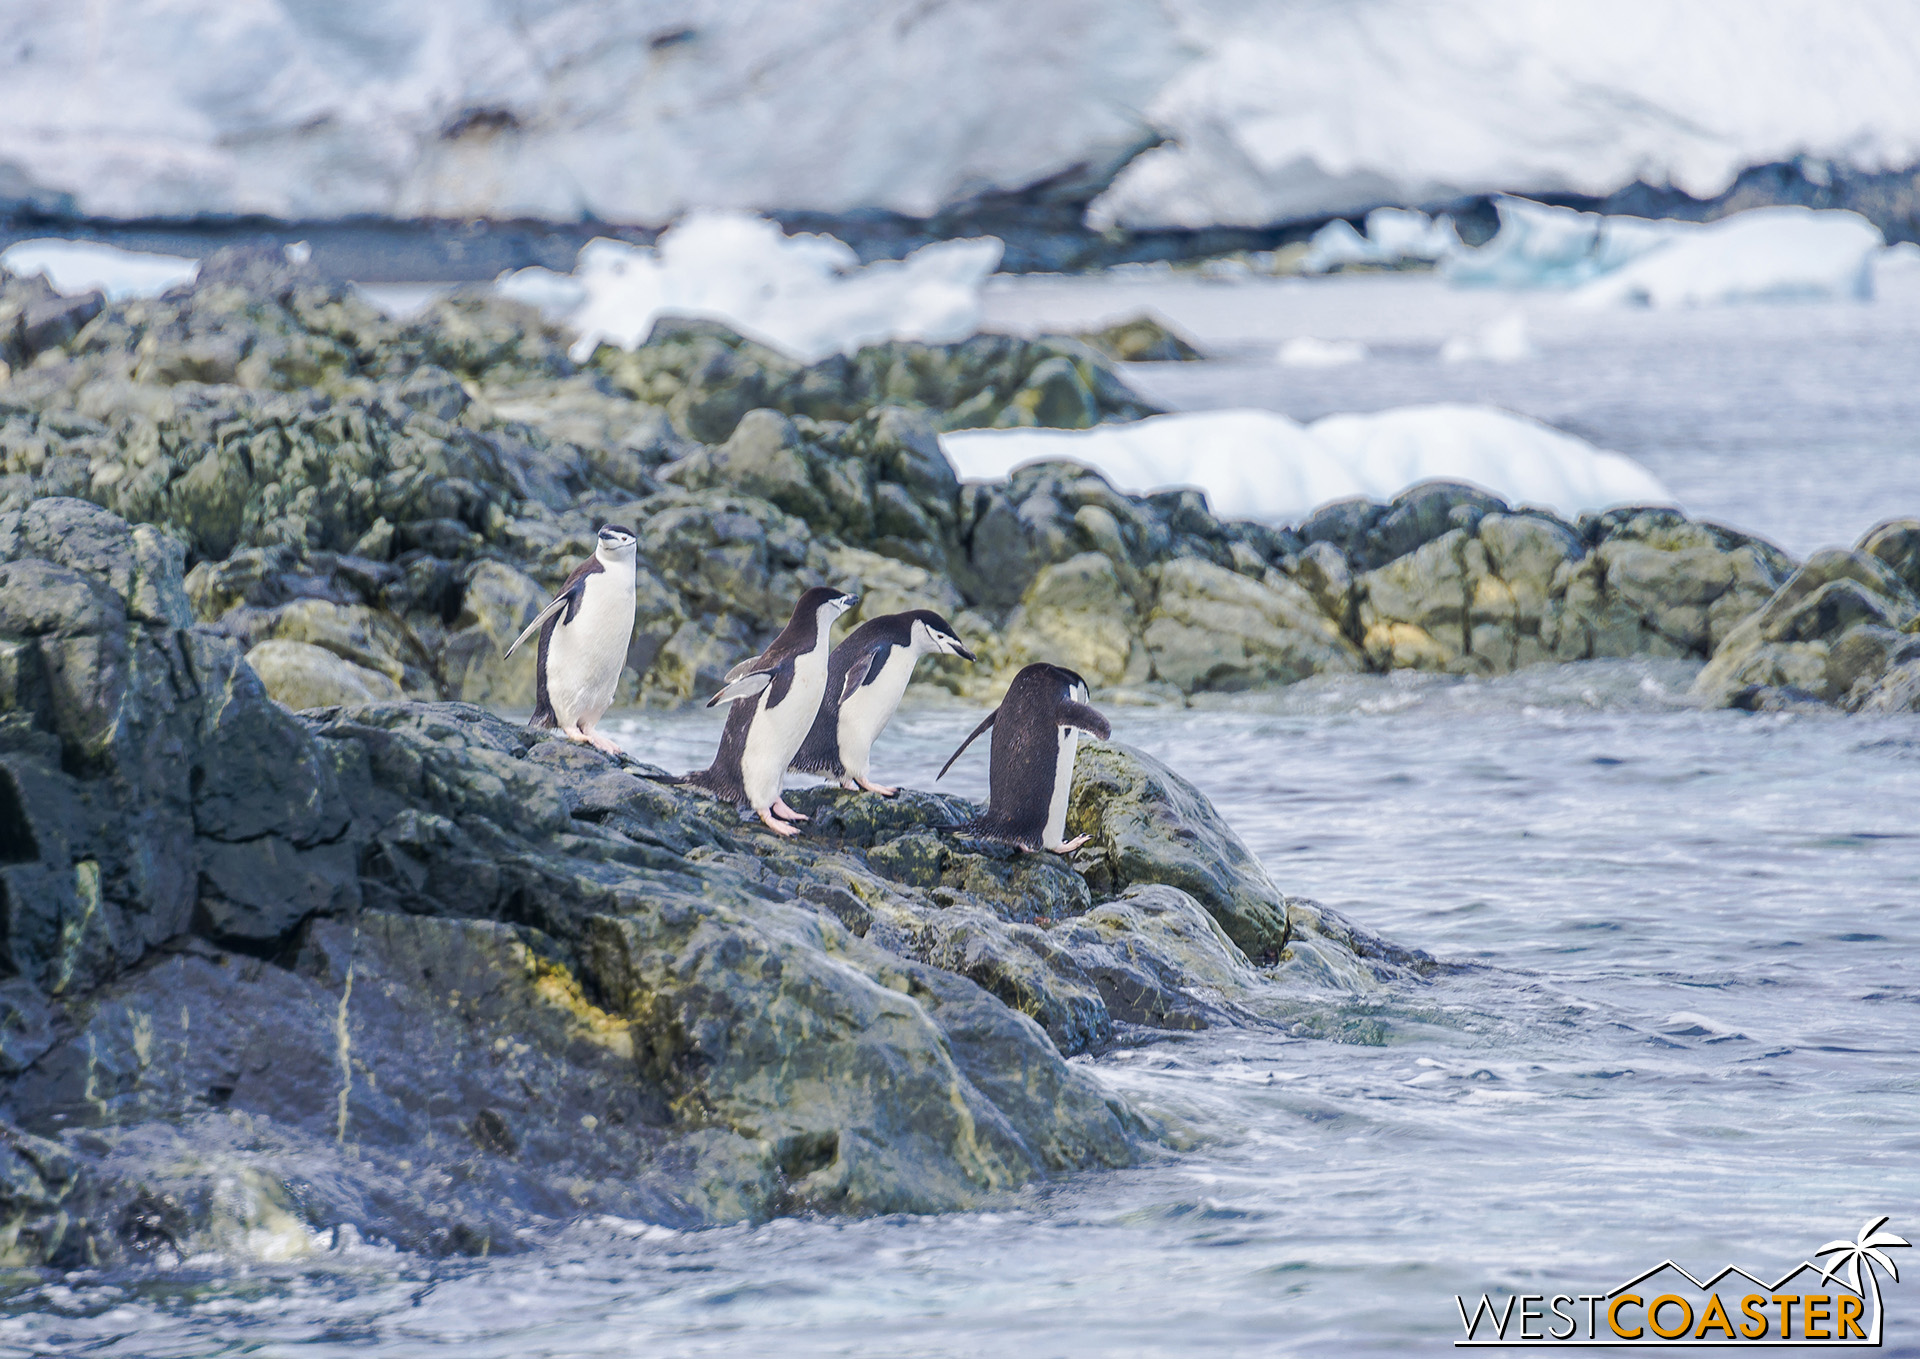 The Chinstrap penguins on the rocks fare better in their water entries.